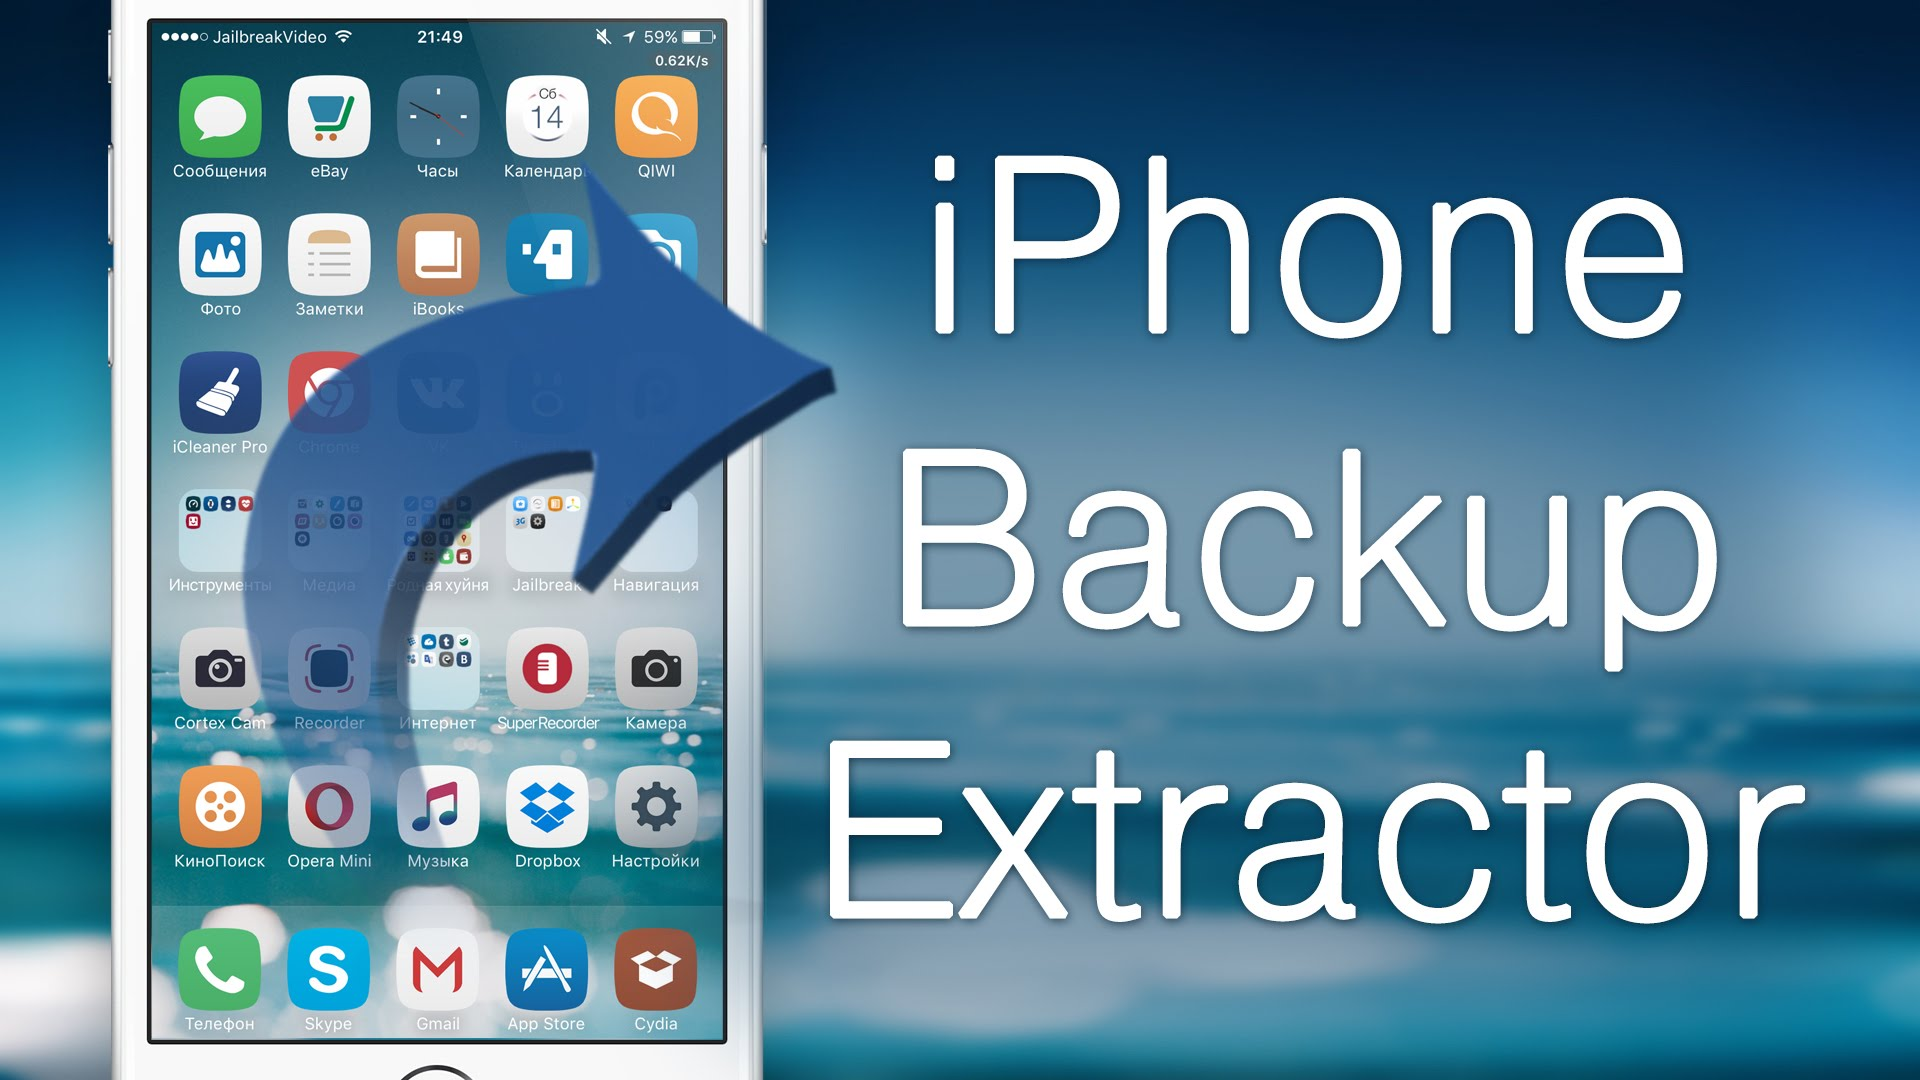 iPhone Backup Extractor windows